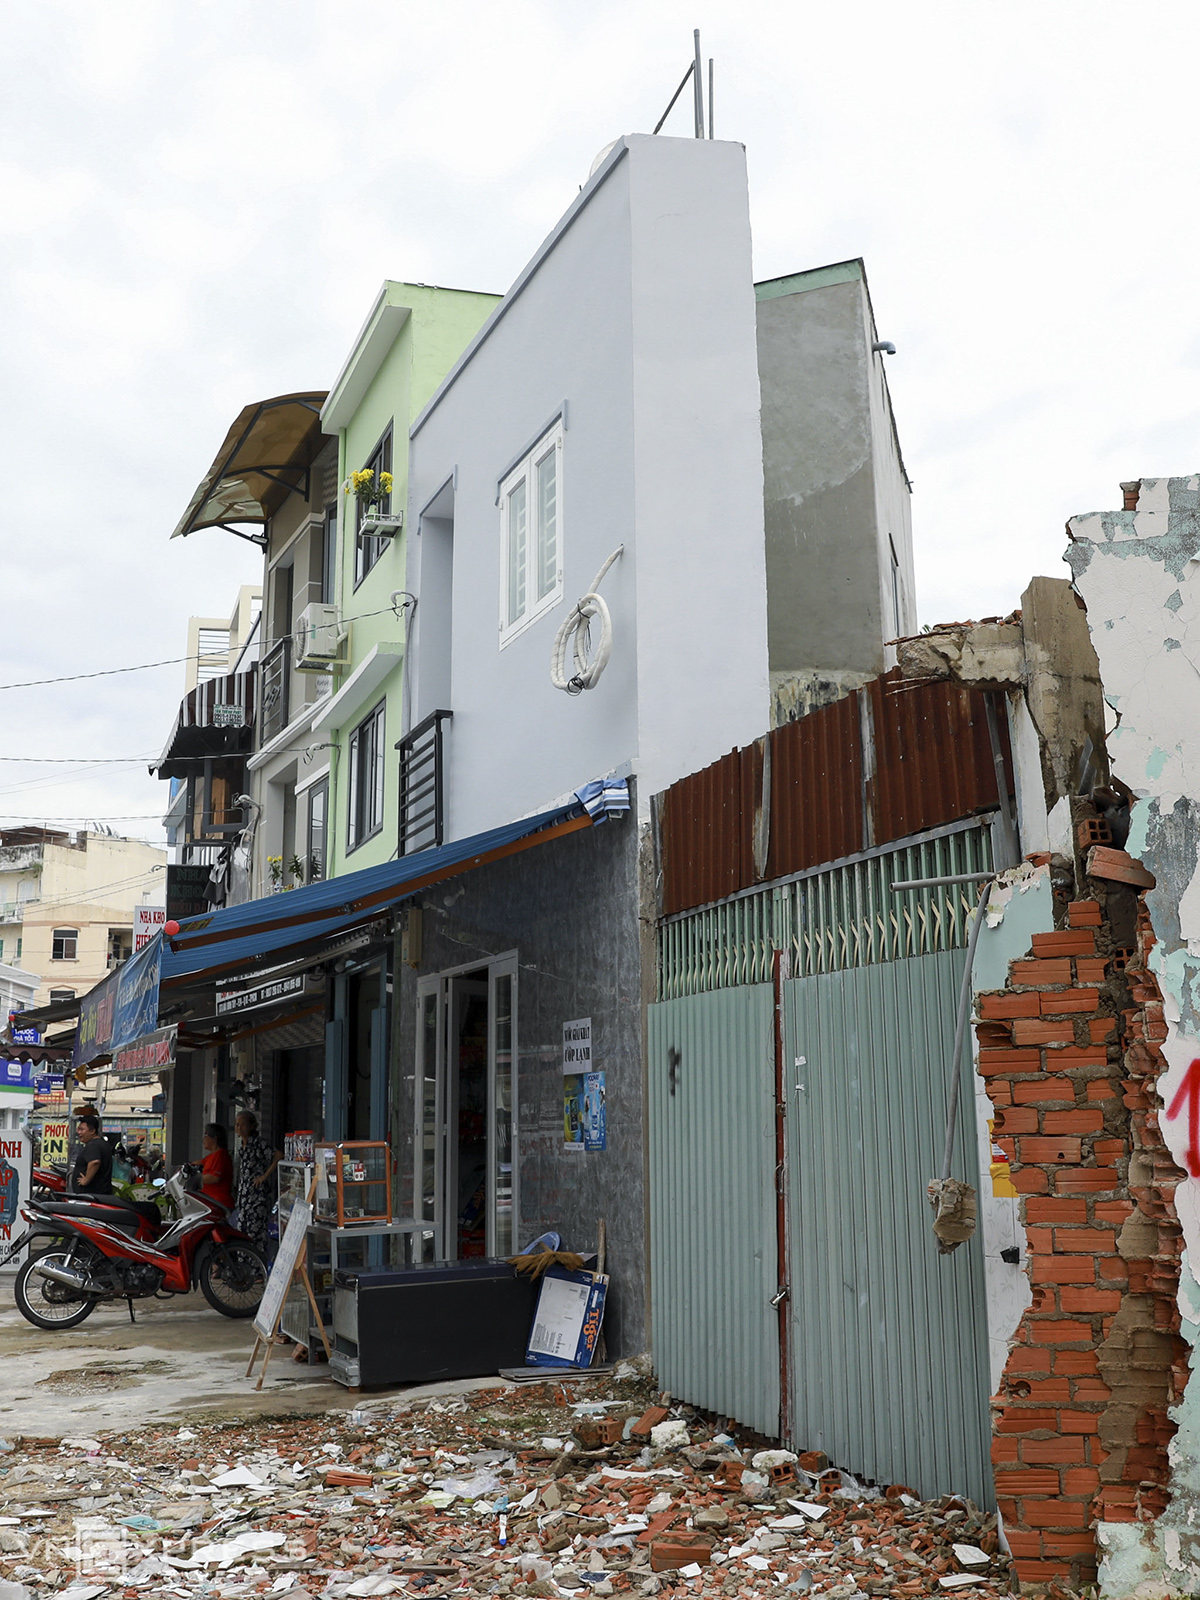 After the demolition, several residents have rebuilt their houses, with some accepting to live in houses that are much thinner than a normal one.The expansion project is to ease traffic jam on a narrow section of Bui Dinh Tuy that usually receives lots of vehicles.